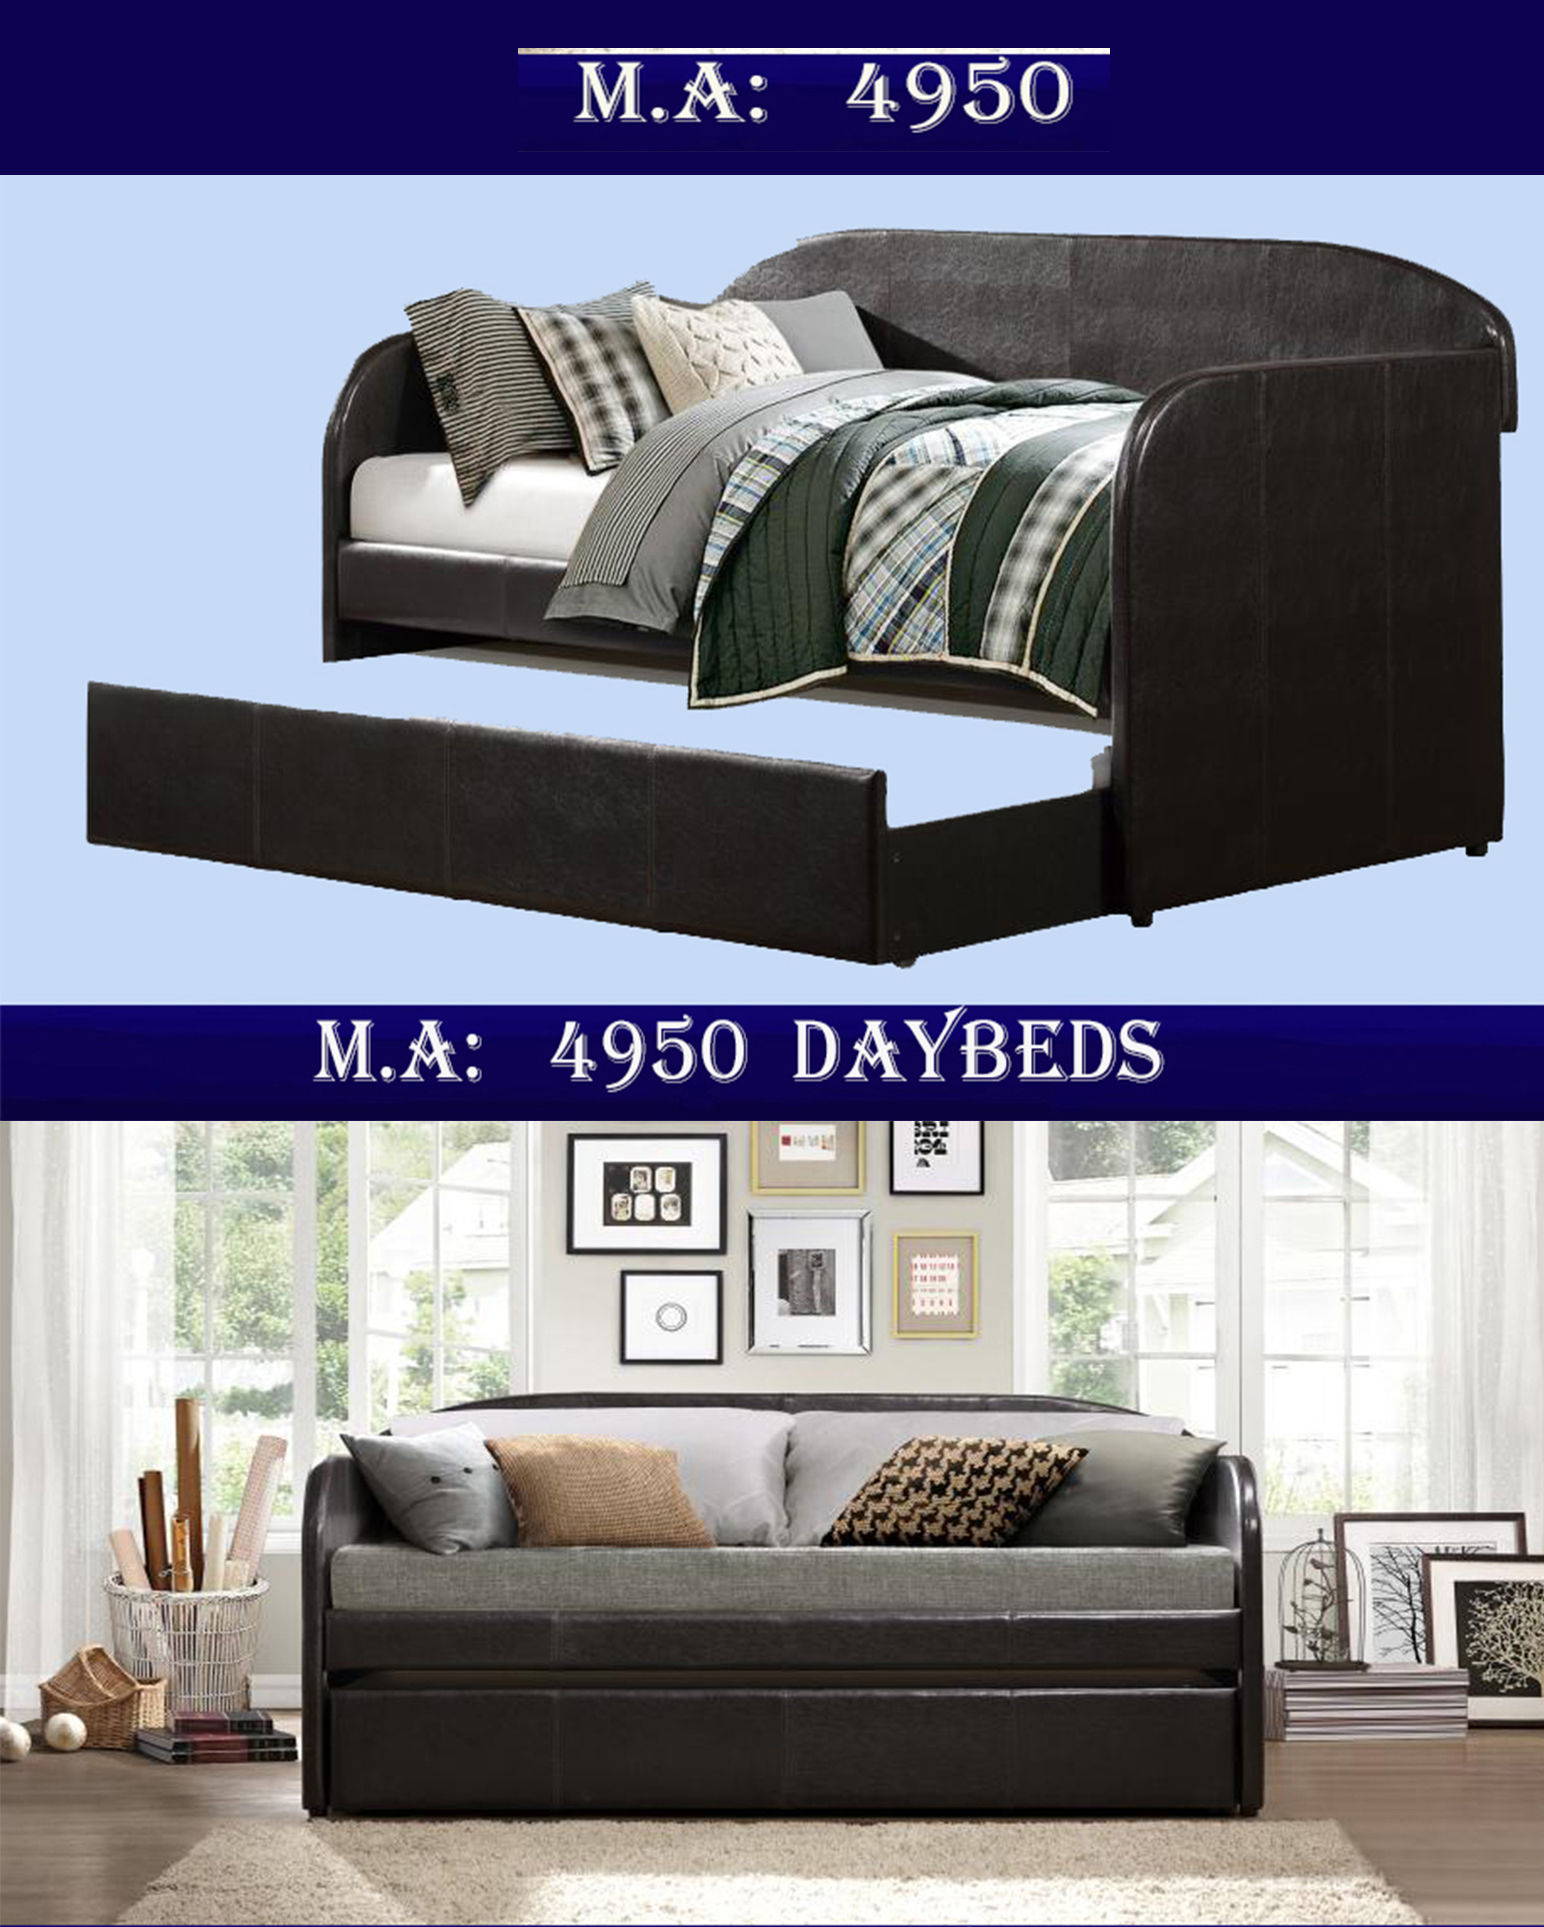 1-4950  daybeds